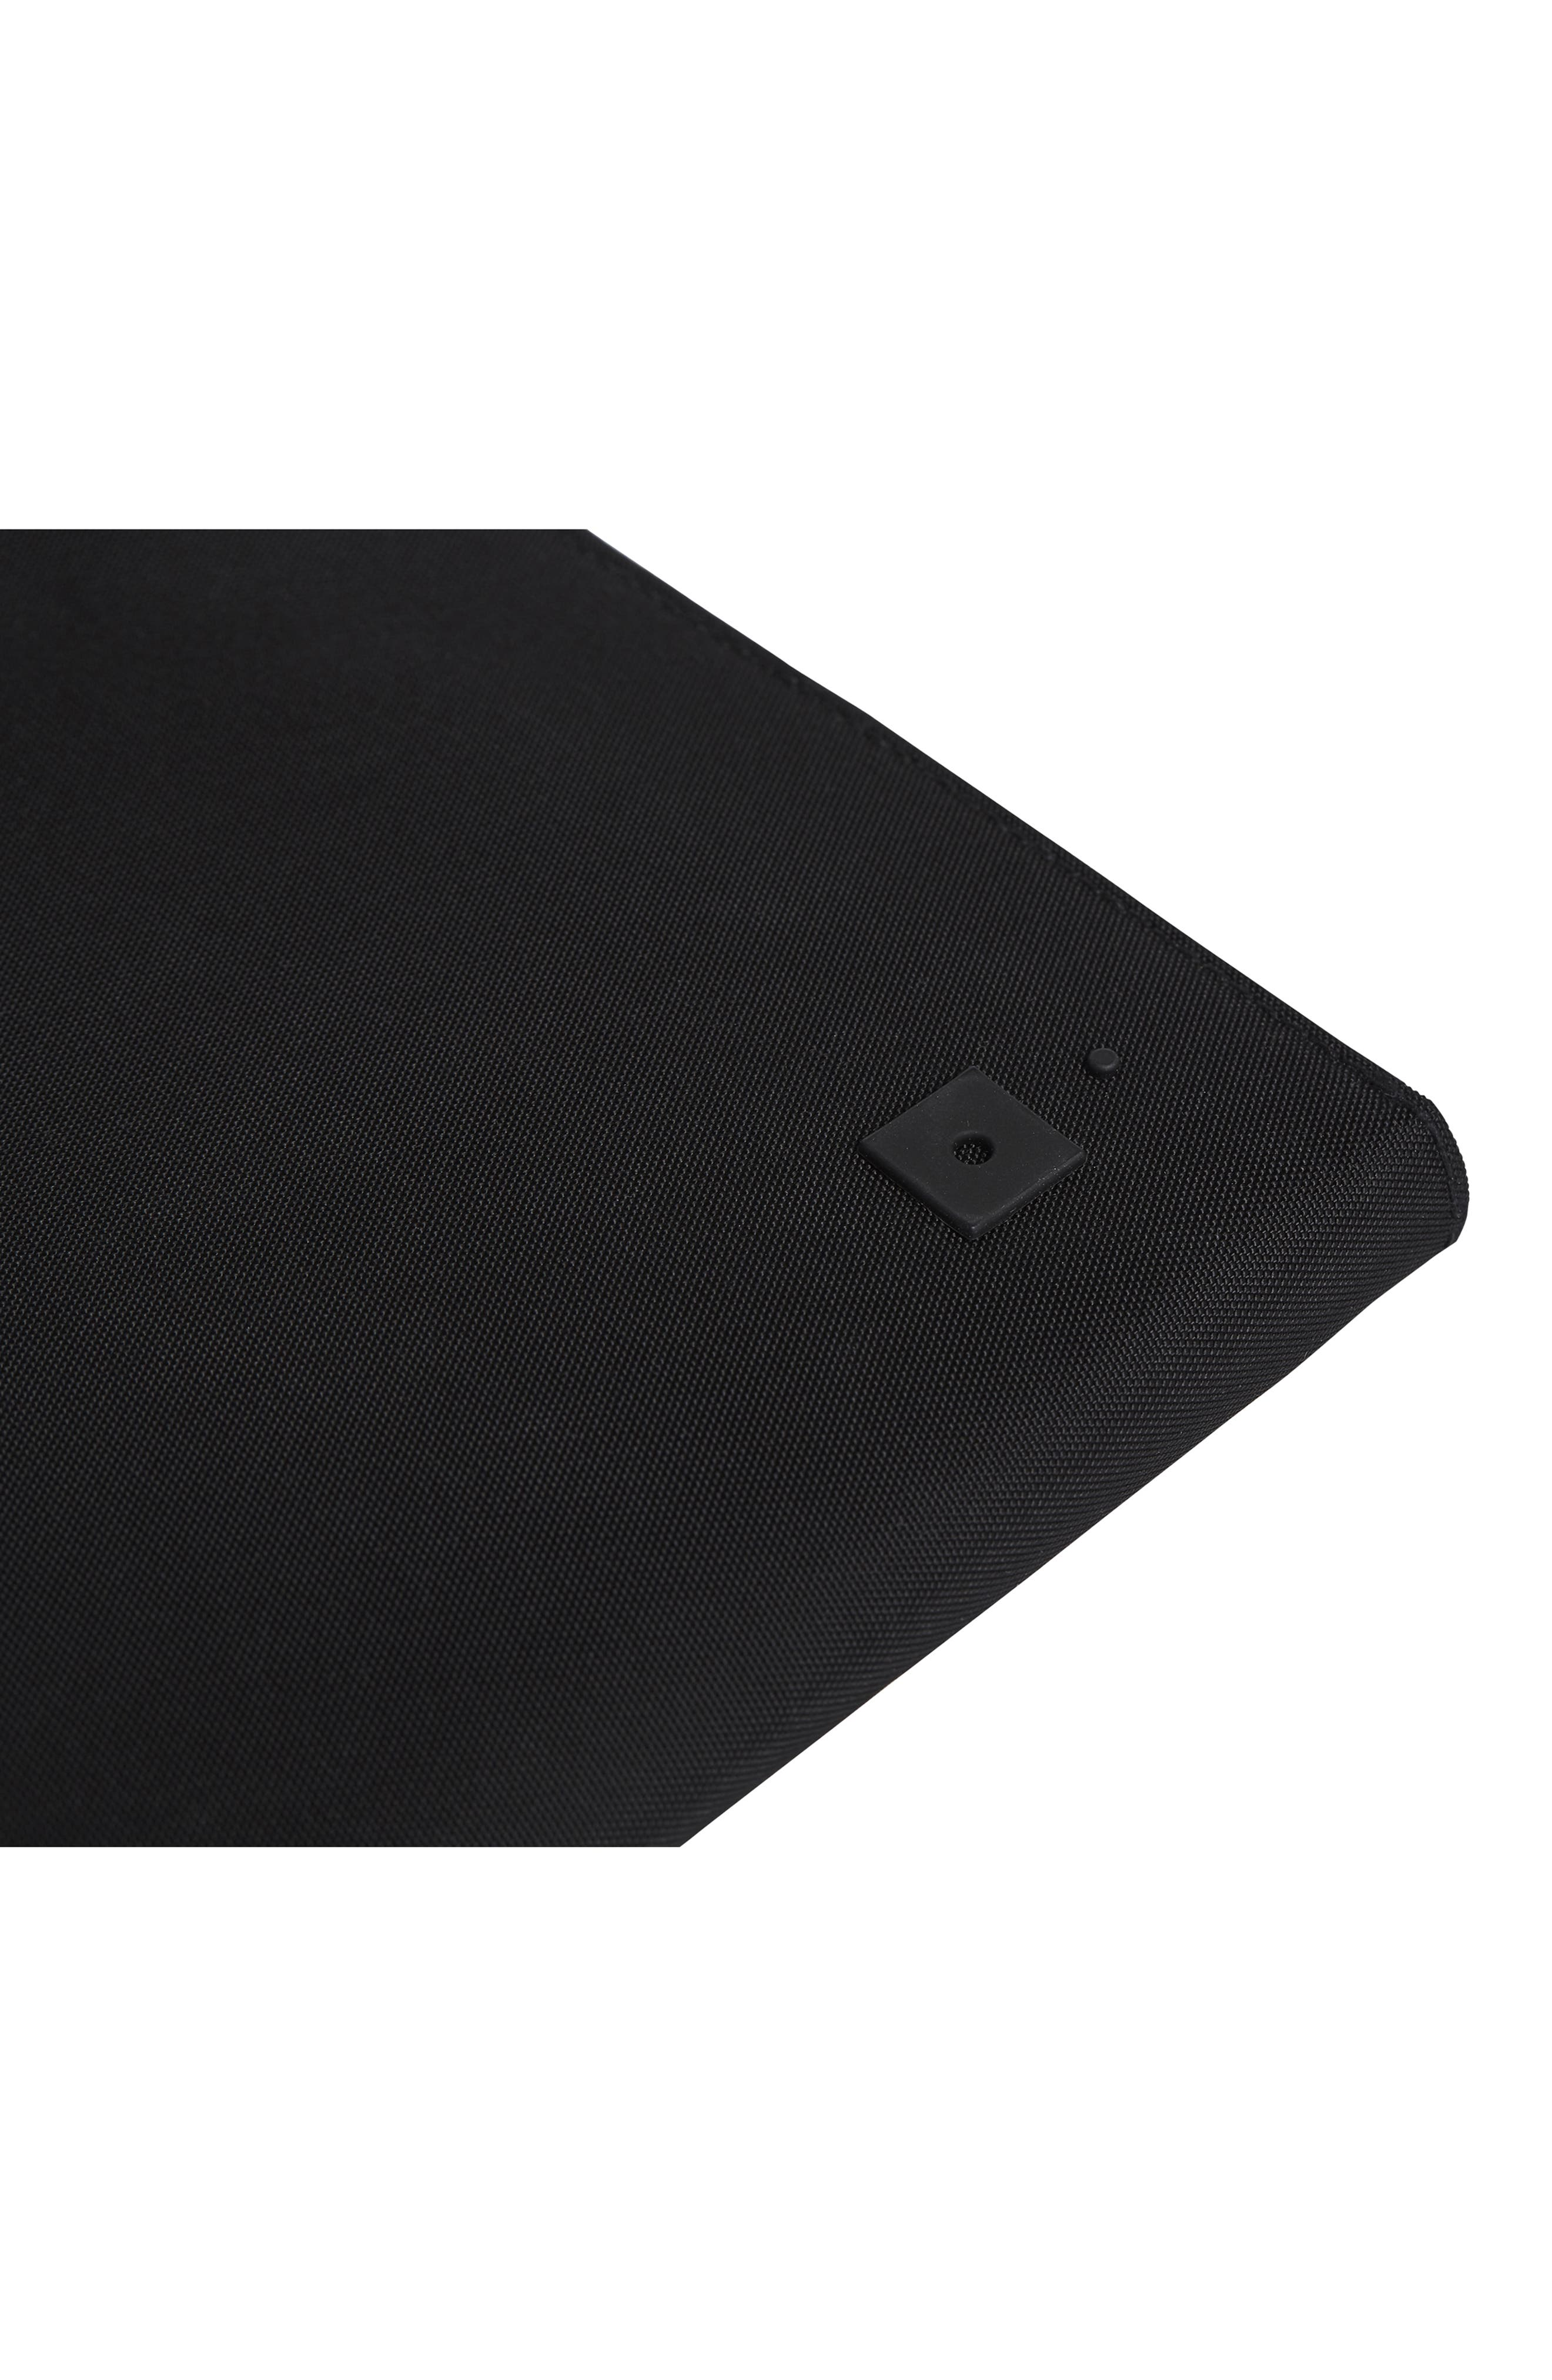 Portfolio Case,                             Alternate thumbnail 9, color,                             BLACK NYLON/ BLACK LEATHER